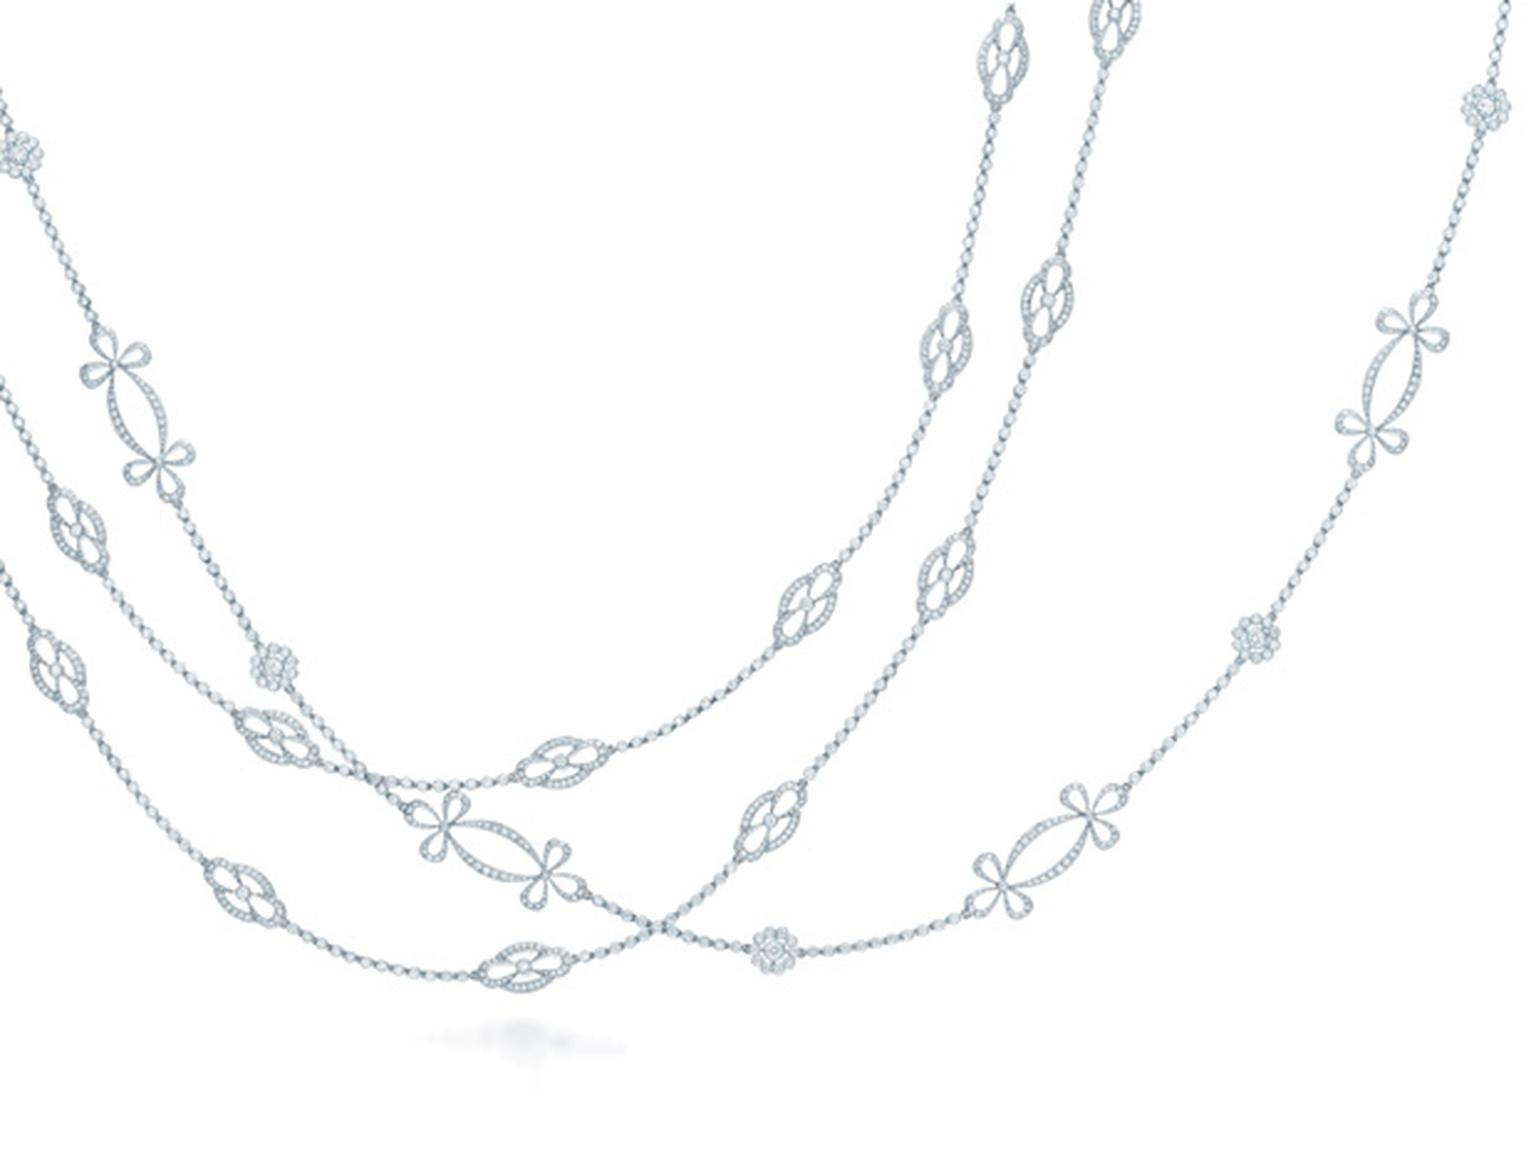 Tiffany & Co. Opera length diamond necklaces